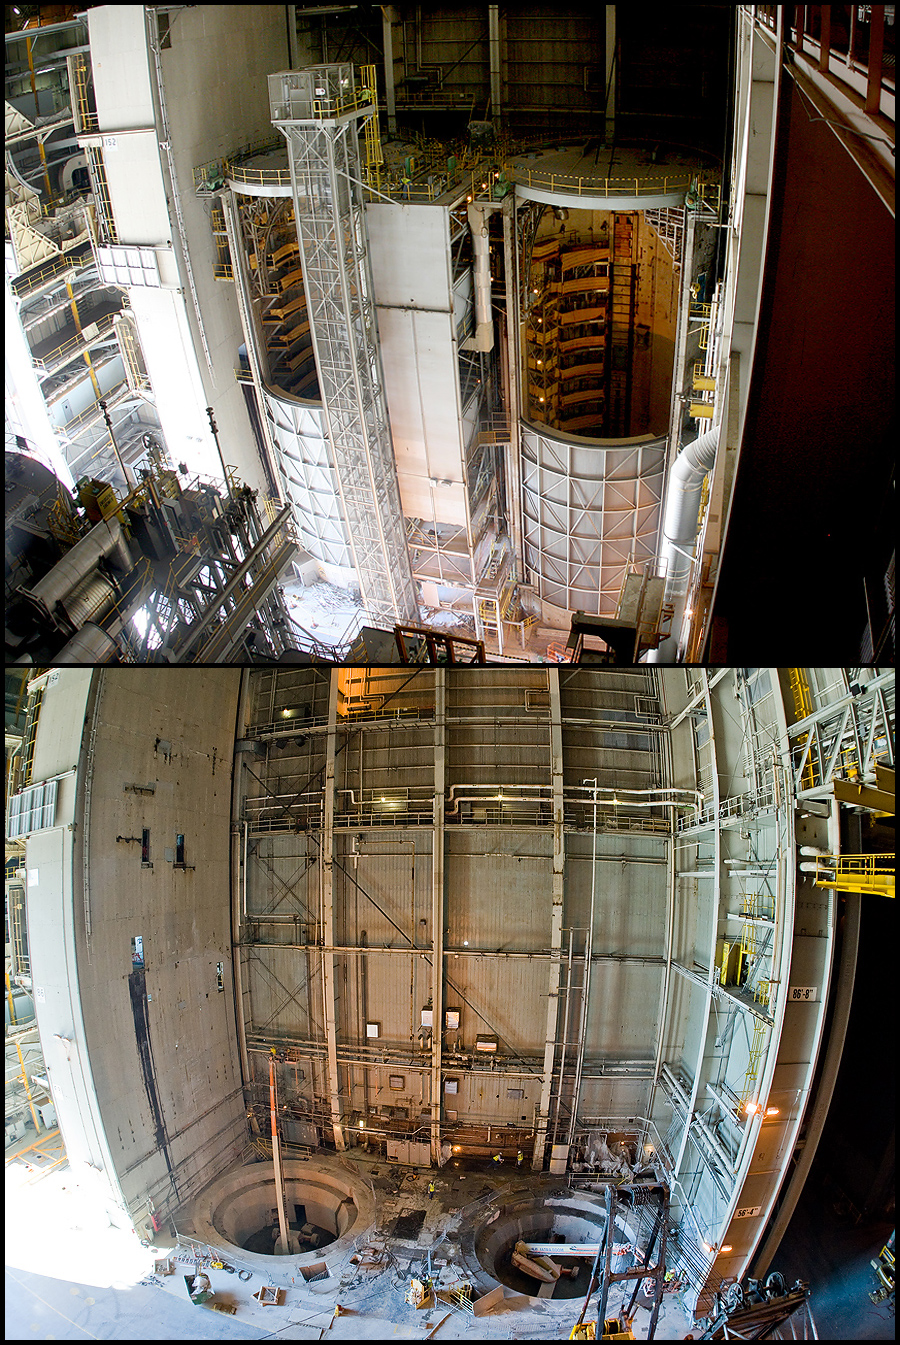 In this before and after photo, Cells B and C in Building 110 have been completely removed. The space is being prepared for the installation of the Vertical Assembly Center, which will be the world's largest friction stir weld machine.